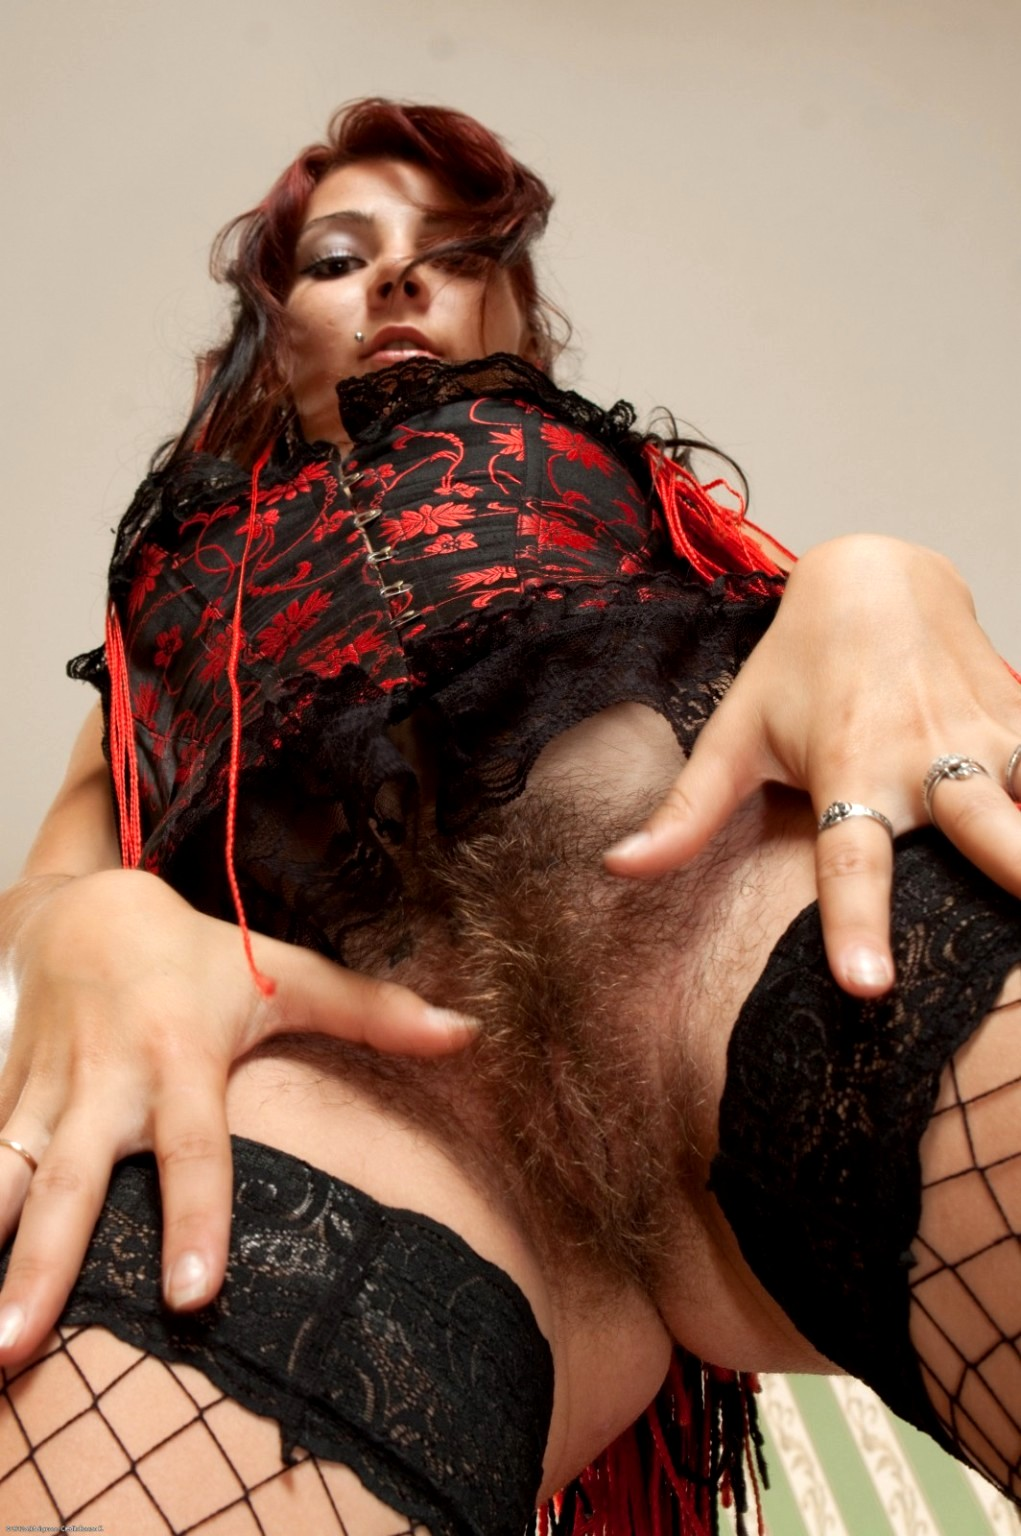 dominatrix-hairy-pussy-average-nudes-videos